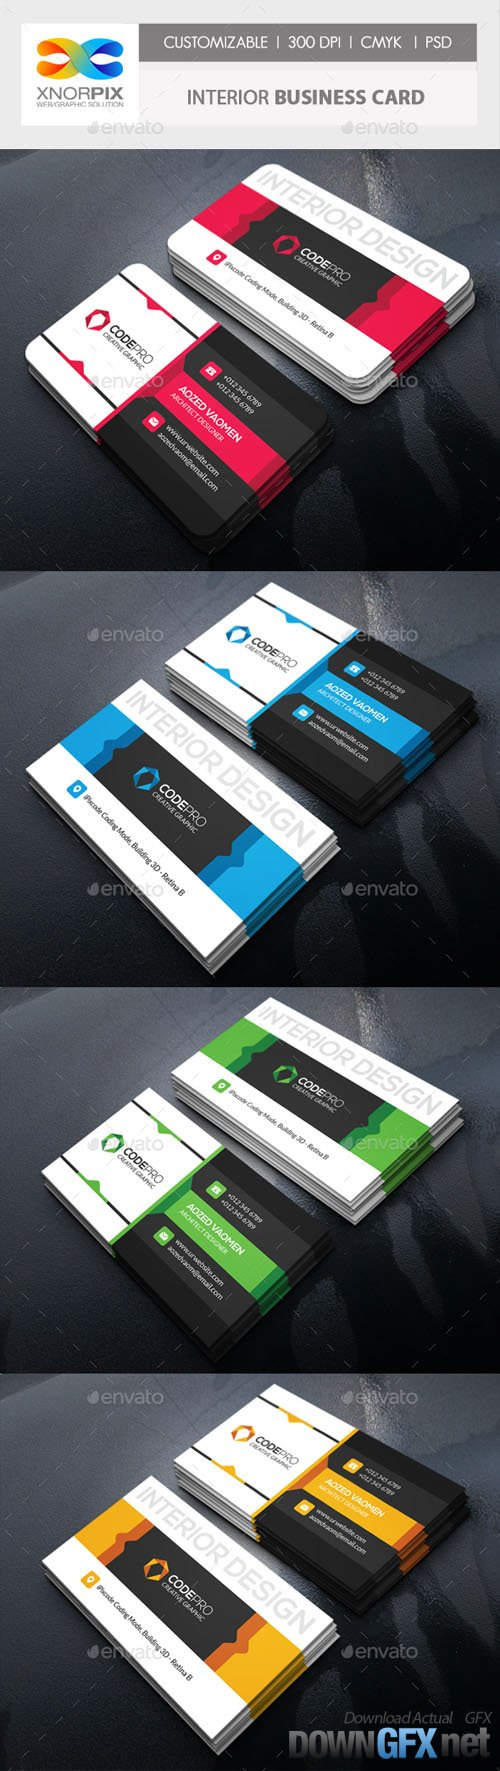 Interior Business Card 20261573